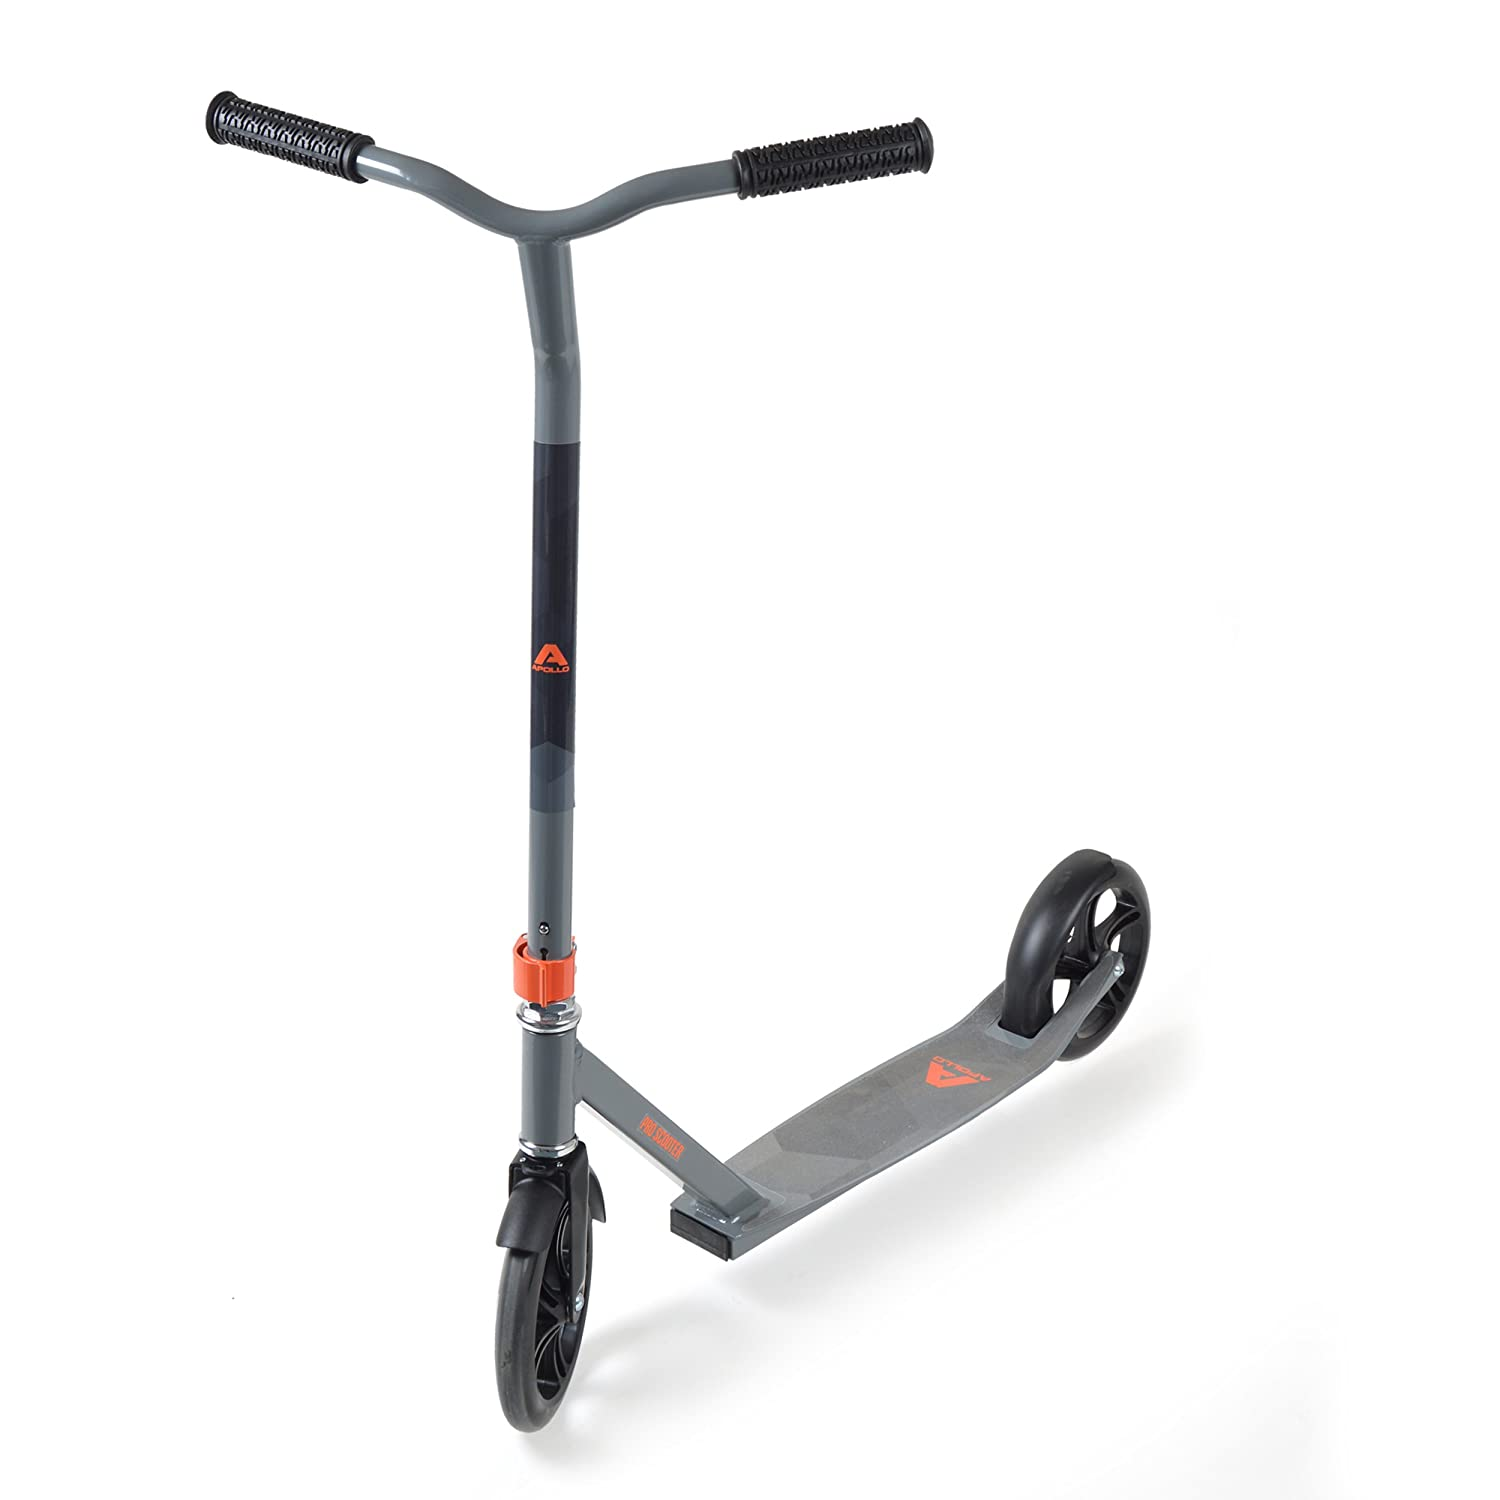 City Scooter - Pro Race gris - Big Wheel City roller - scooter robuste con maniallar especialmente alto para una agradable sensación de desplazamoiento, el patinete de la marca Apollo para niños y adultos … 3S GmbH & Co. KG